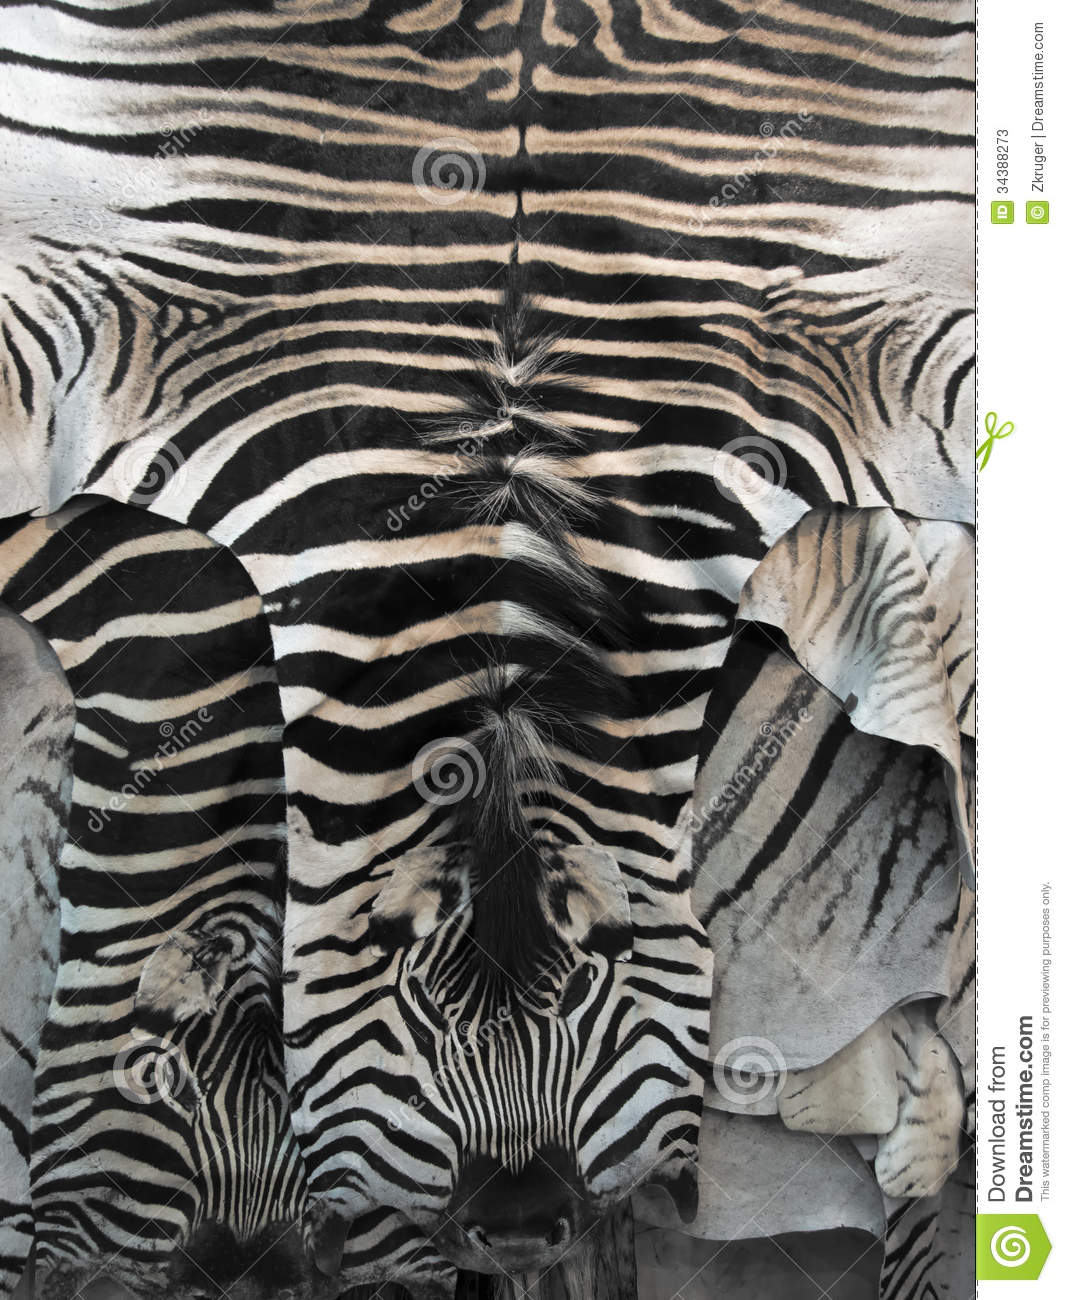 Zebra Skin Rug Stock Photos